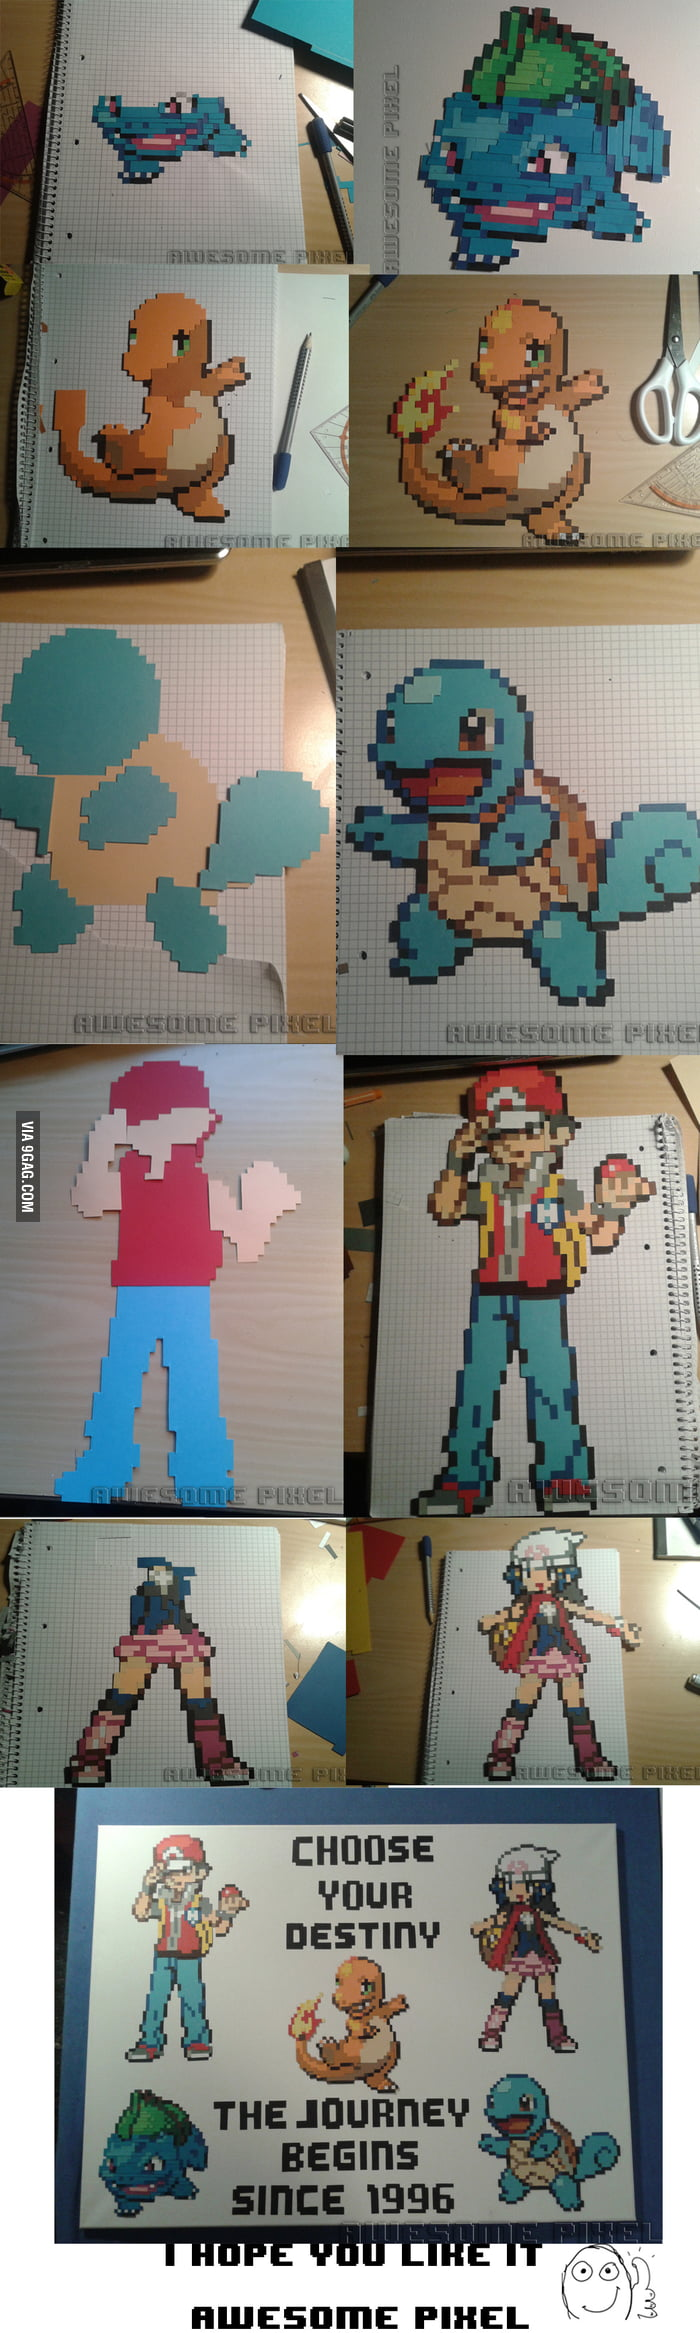 I heard you like Pixelart (Pokémon)